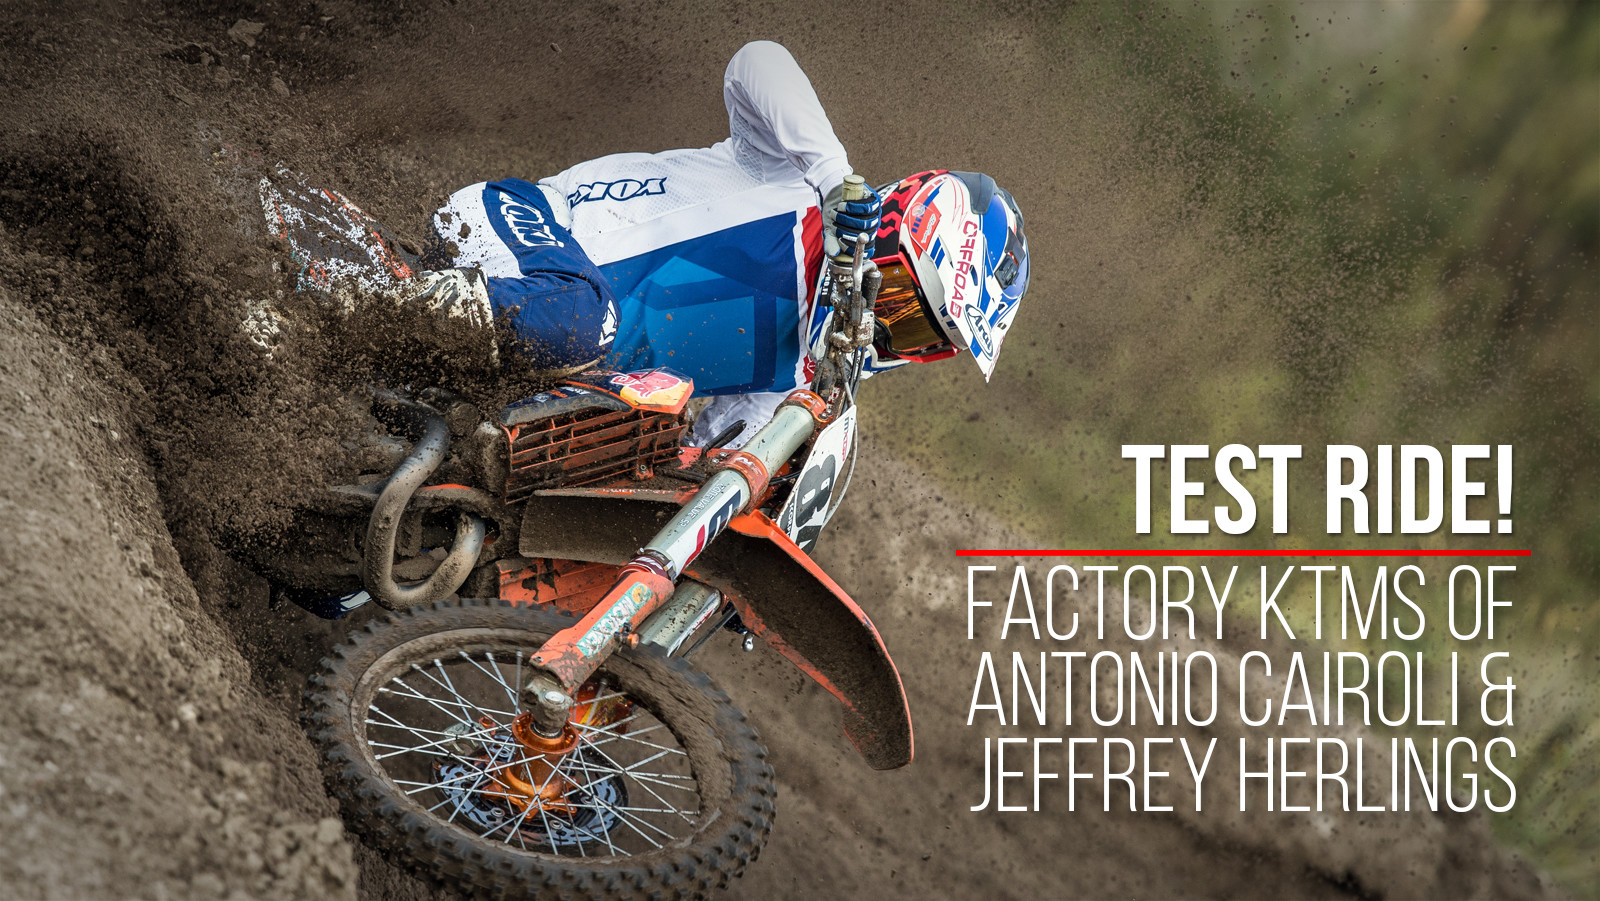 Test Ride: The Factory KTMs of Antonio Cairoli and Jeffrey Herlings